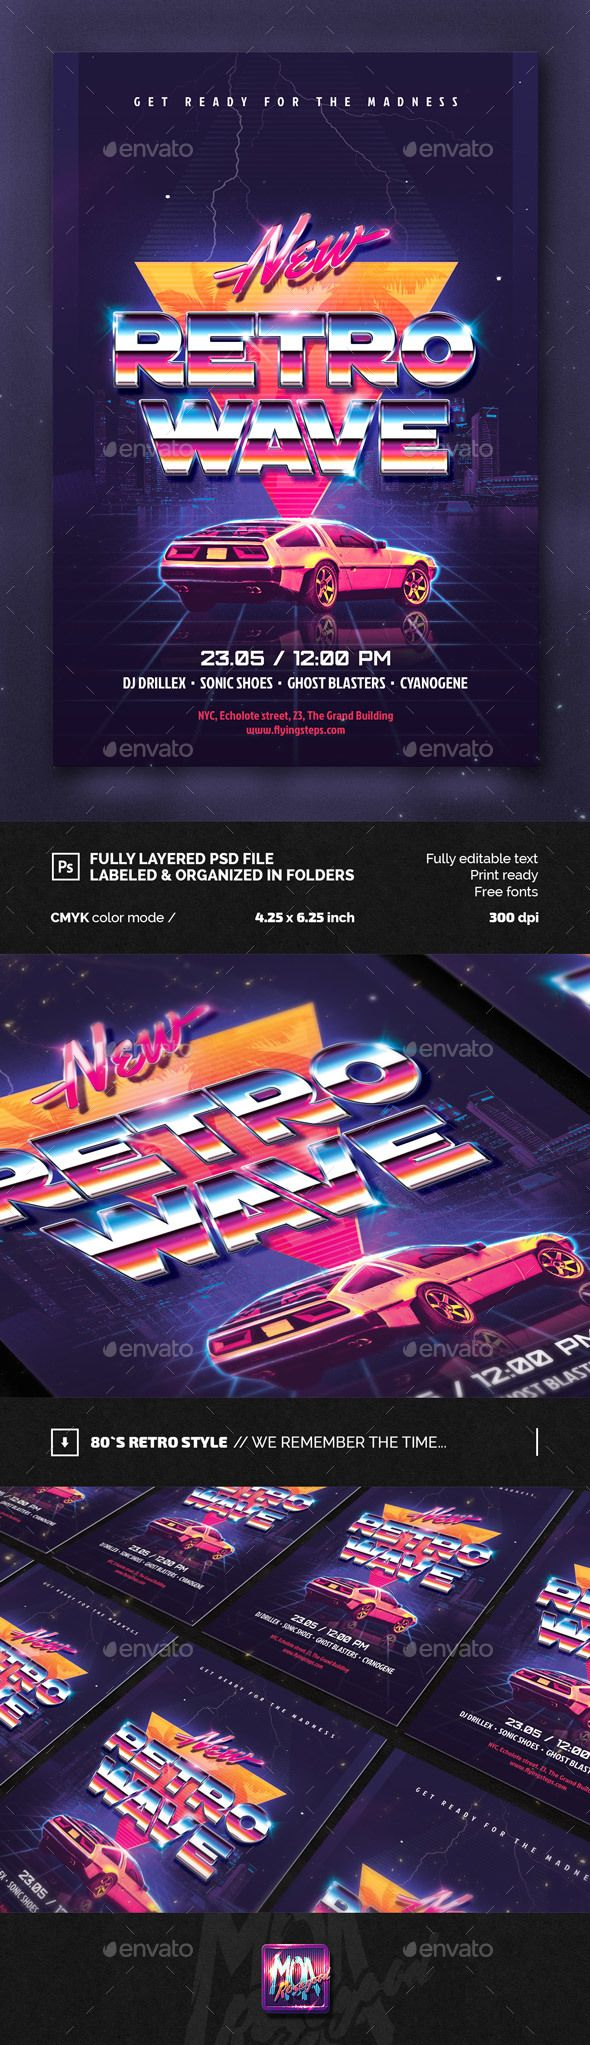 80`s New Retro Wave Party flyer  #back #car #dance • Available here → http://graphicriver.net/item/80s-new-retro-wave-party-flyer/15541670?ref=pxcr